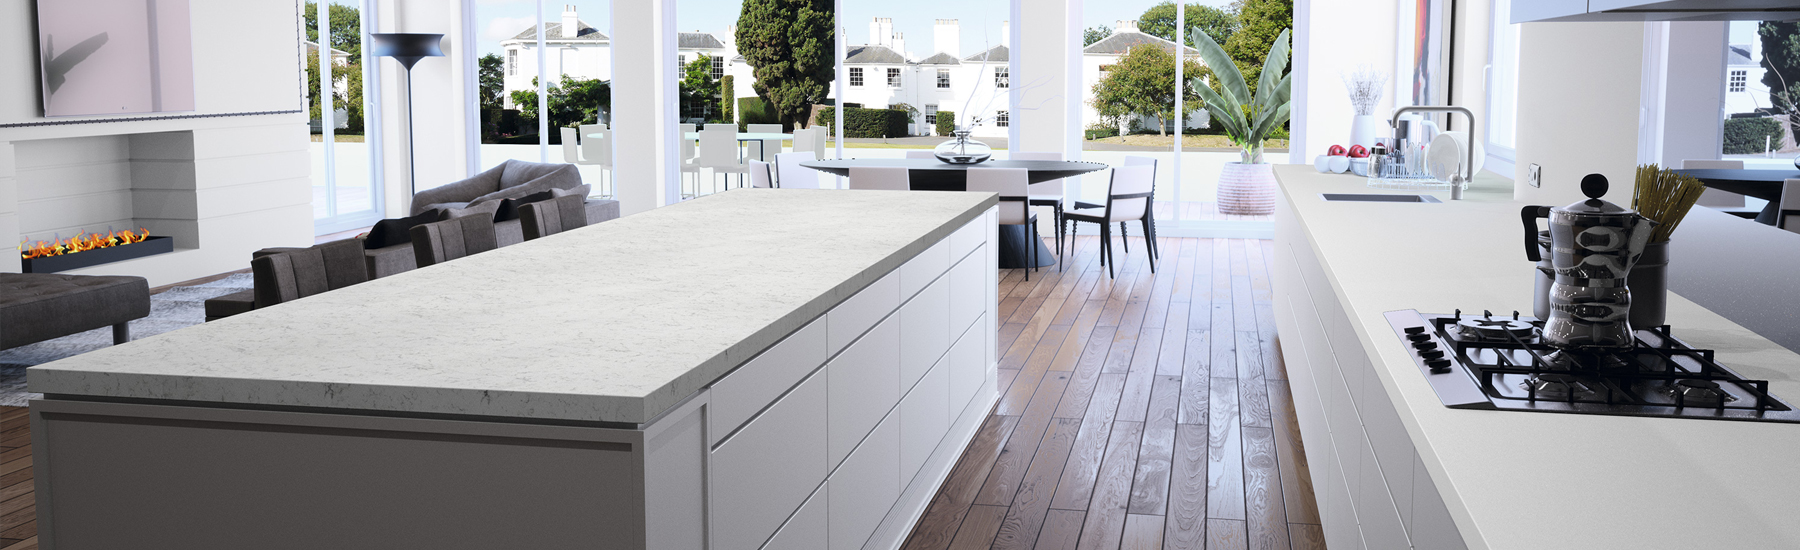 Carrara Quartz Model 2